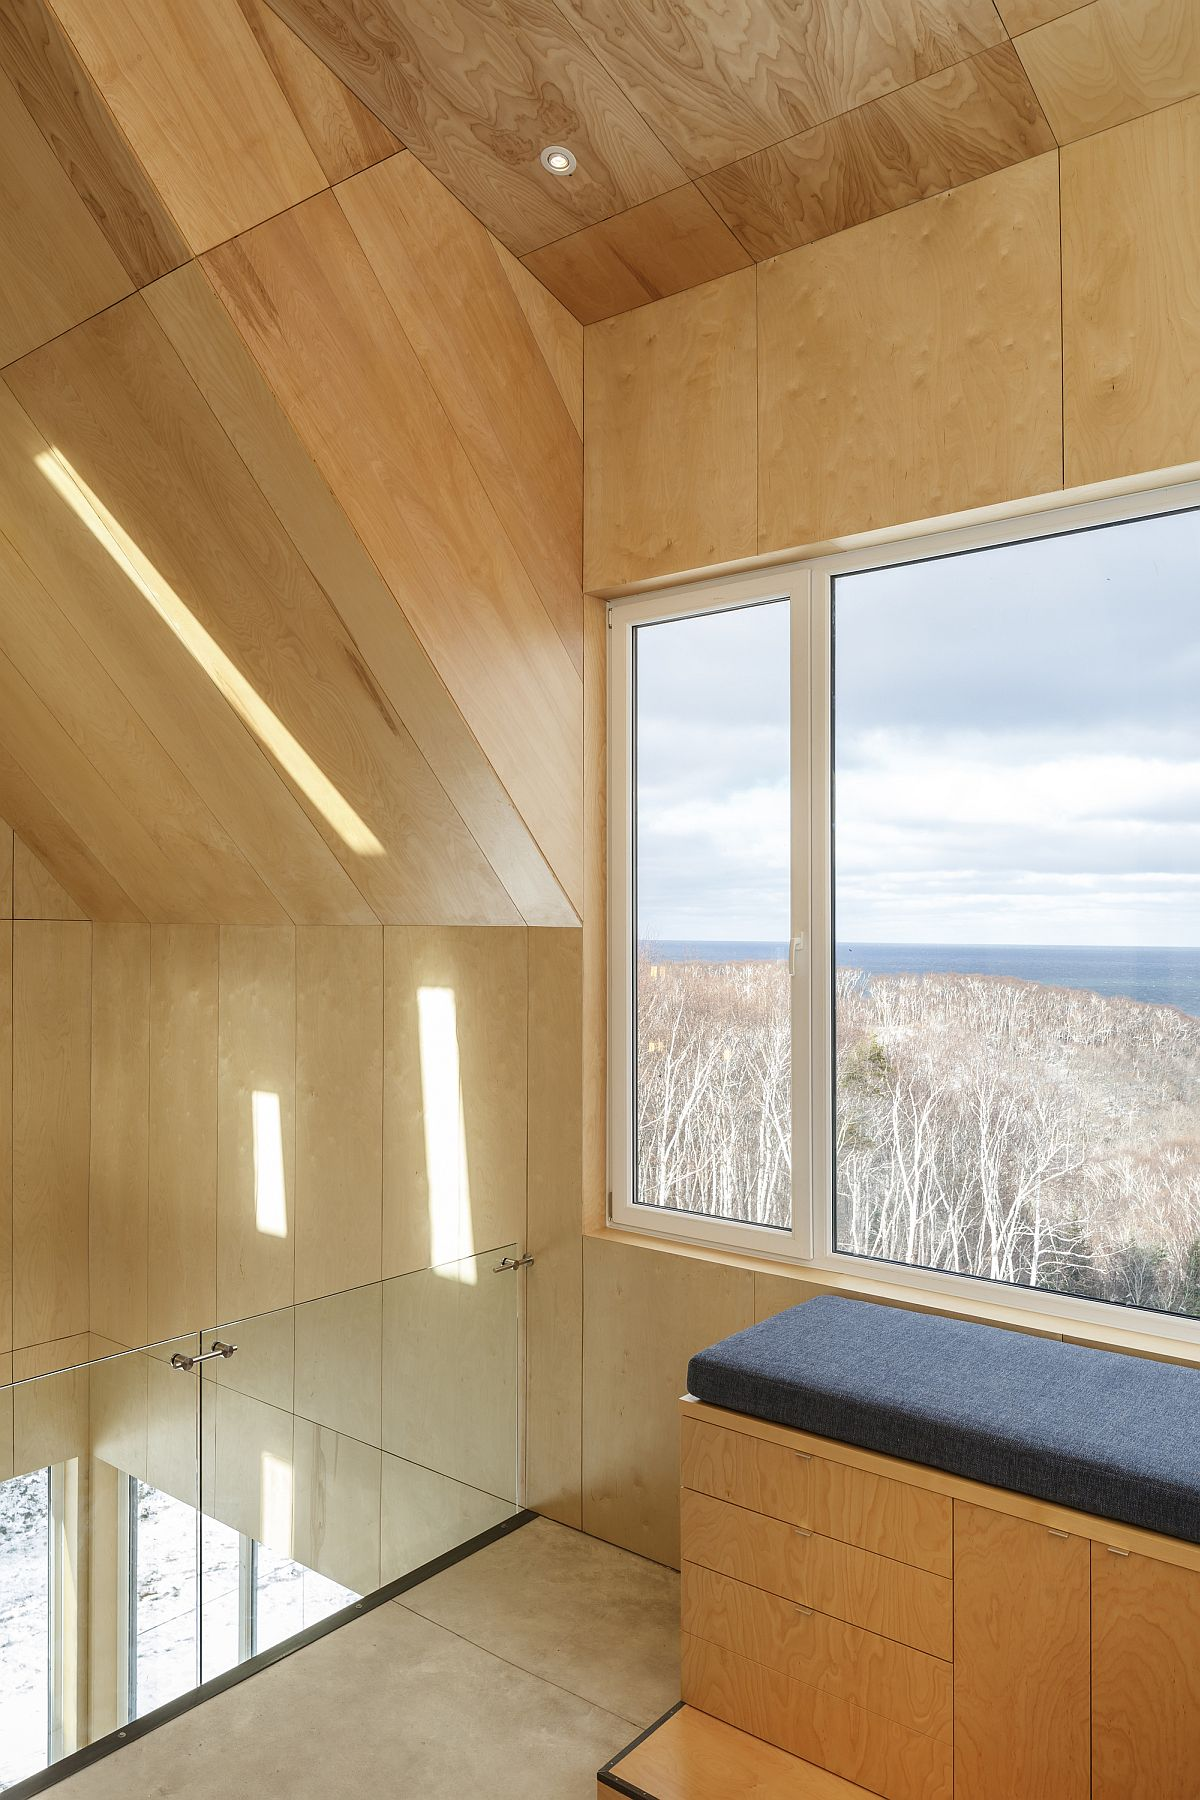 Wooden interior acts as a support that helps that cabin withstand strong winds